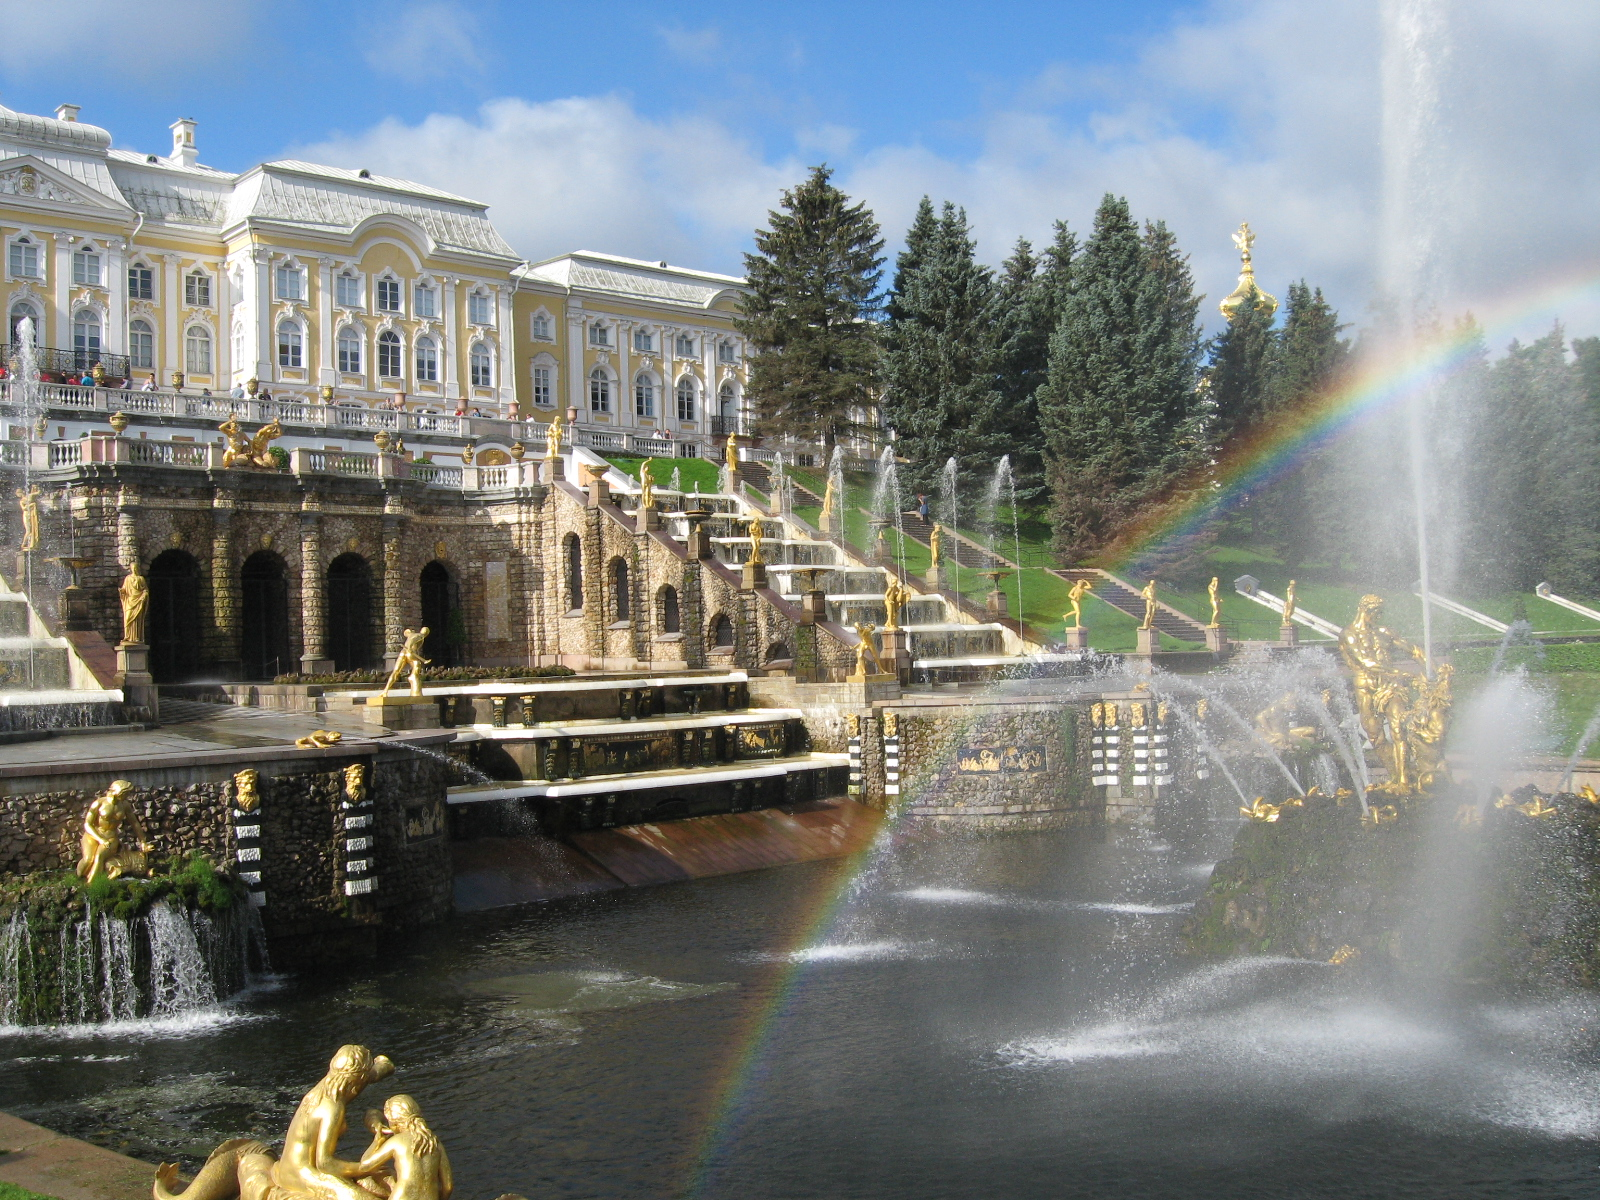 peter the great and the construction of the city st petersburg as a window to the west Peter the great built his baltic city to drag russia into the modern age today, st petersburg remains russia's window to the west and you can feel the energy of.